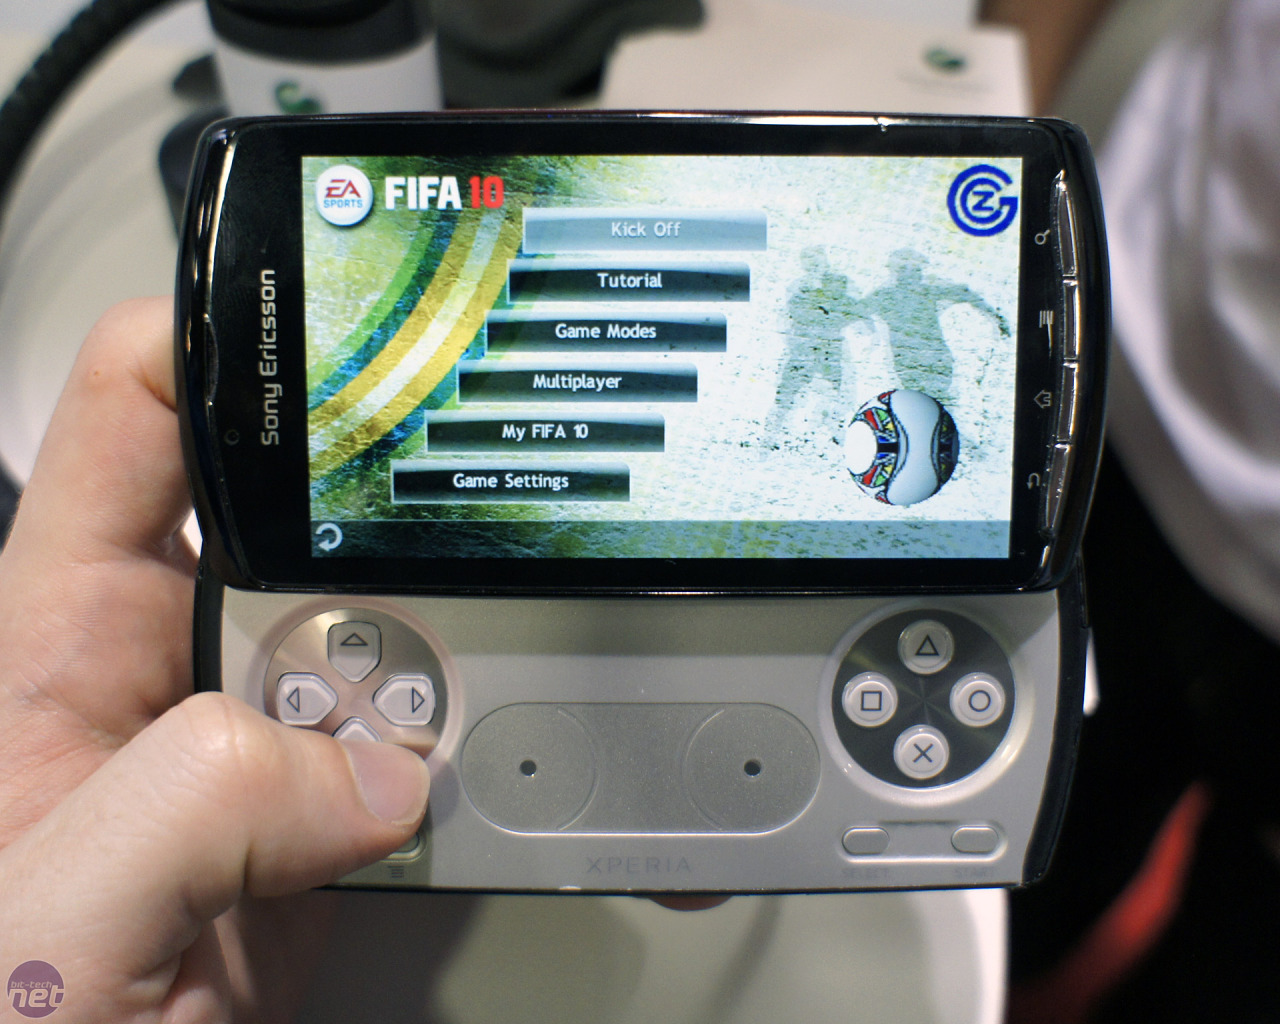 Sony Xperia Play What Do the Experts Think